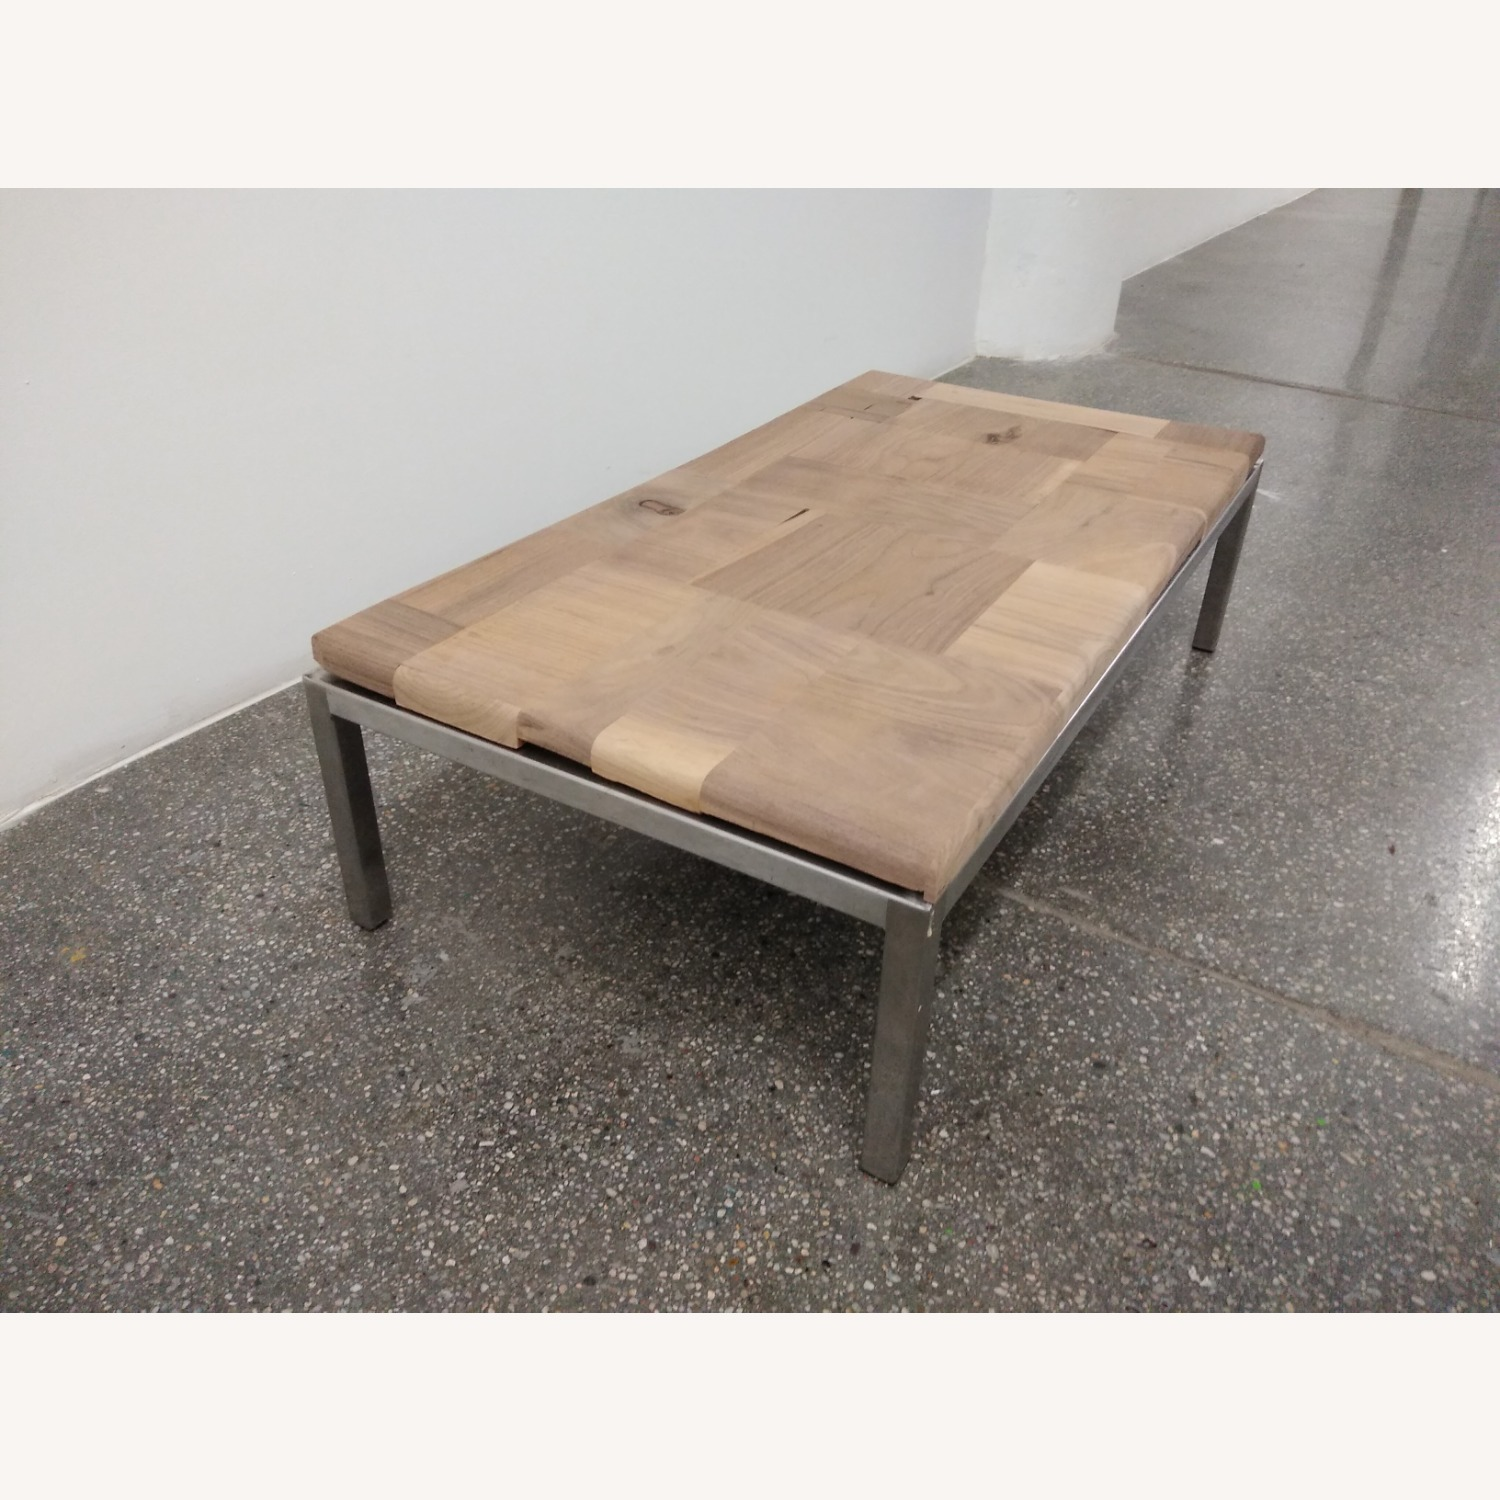 Restoration Hardware Solid Walnut Mosaic Coffee Table - image-3